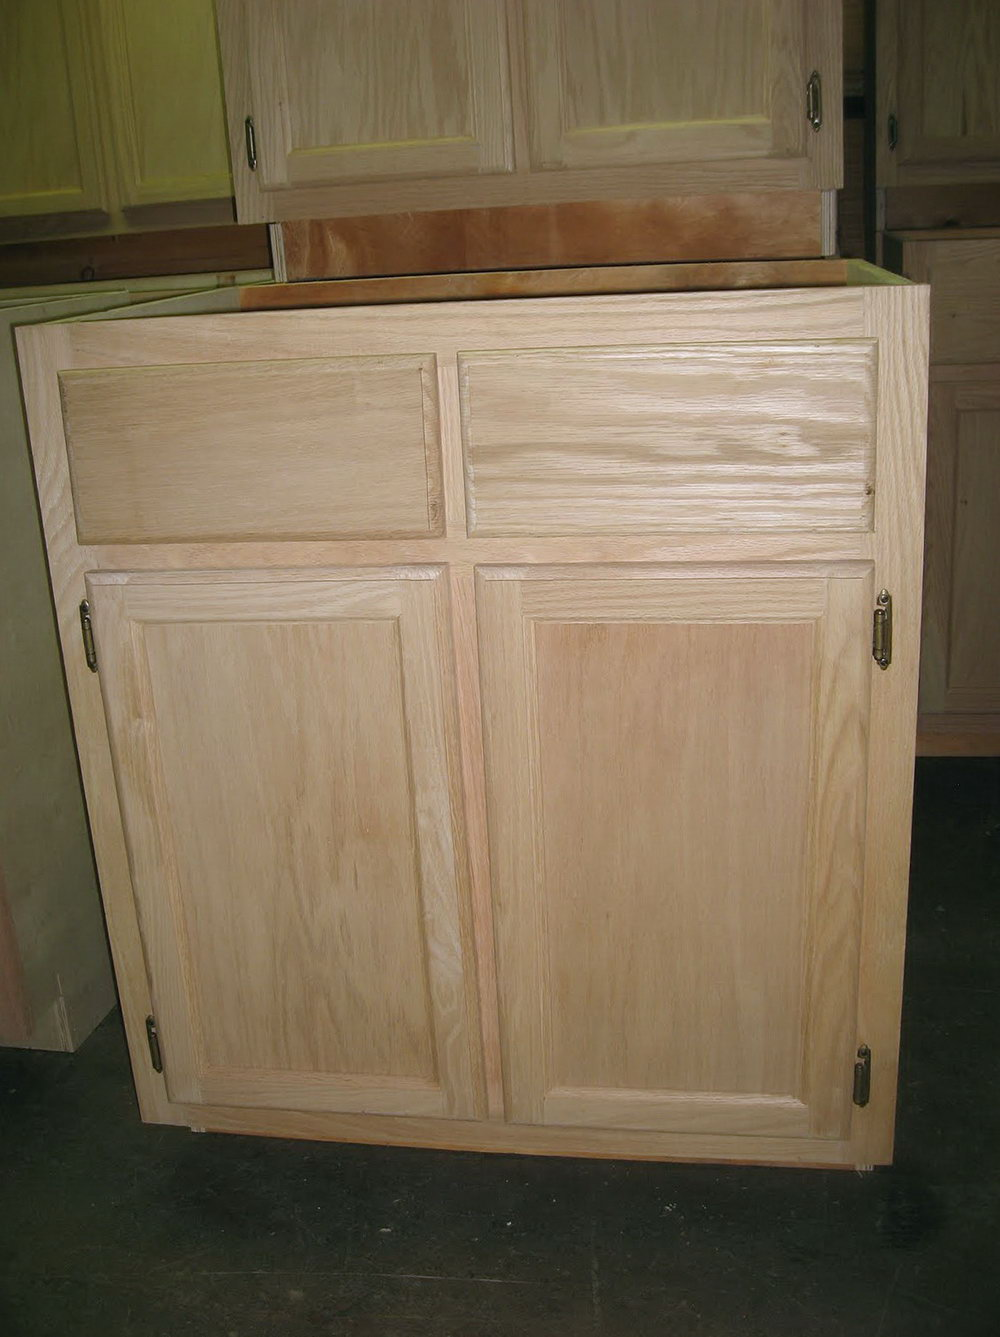 Cheap Unfinished Kitchen Cabinets Near Me